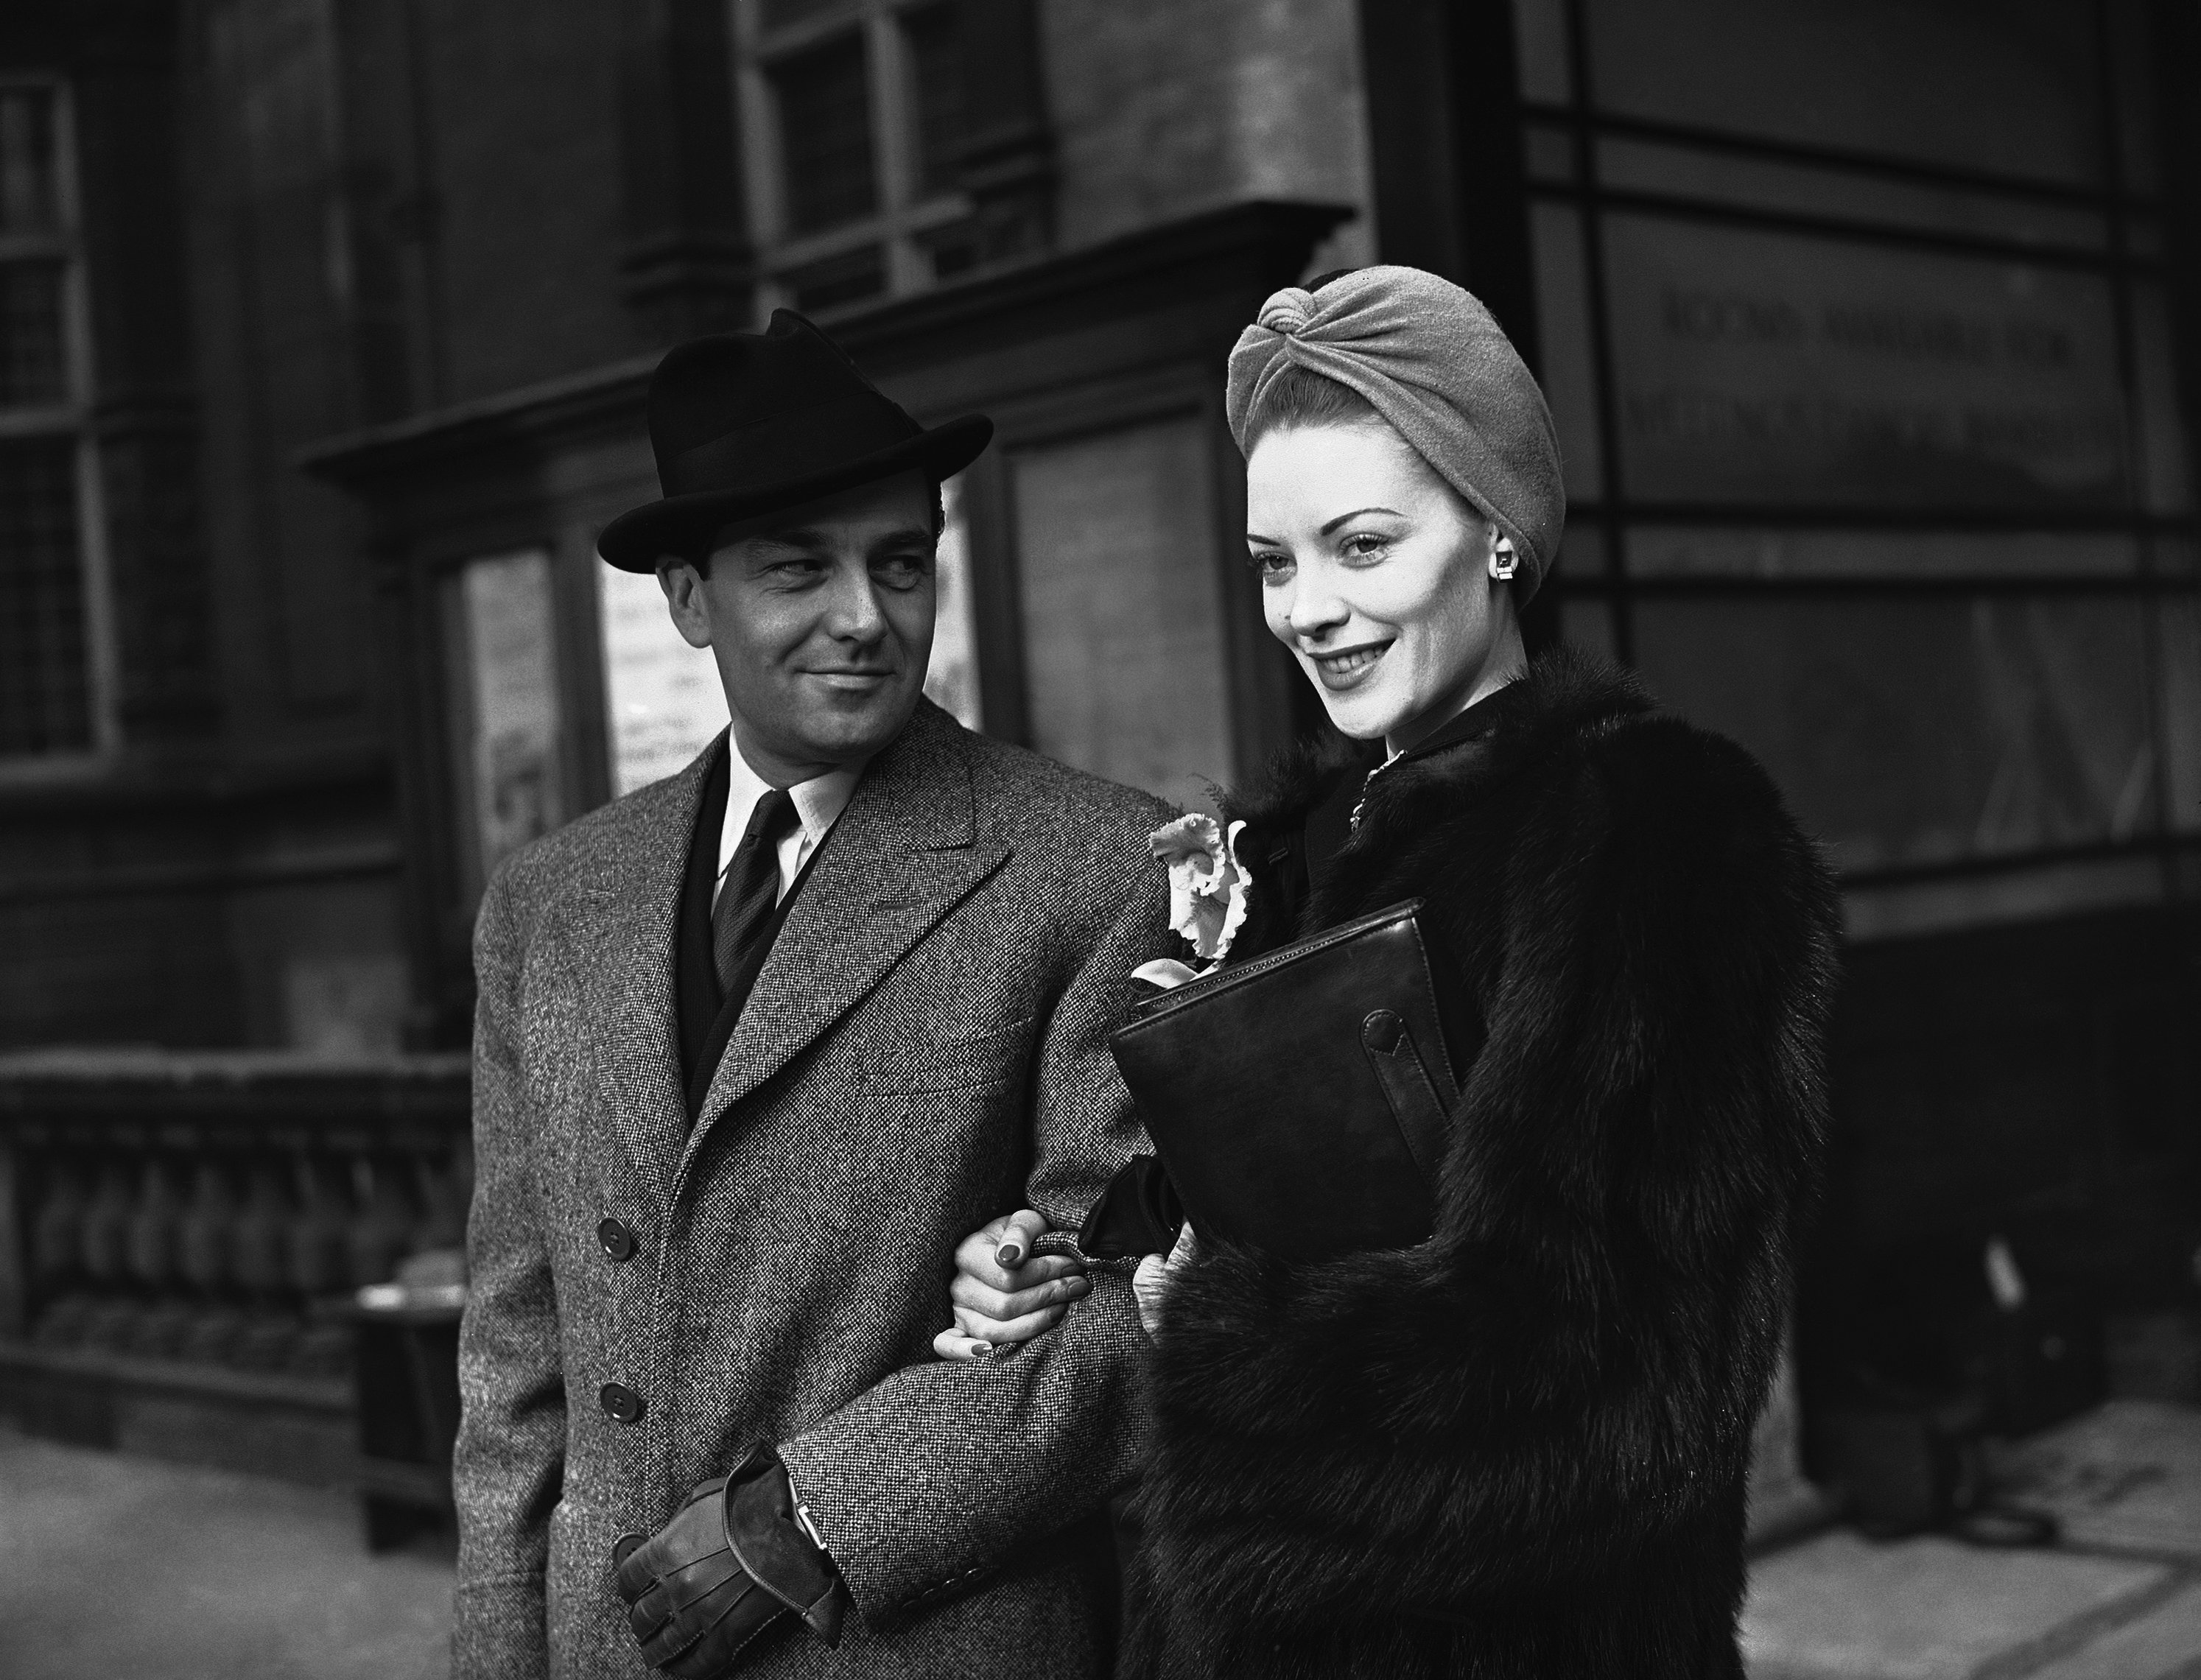 Robert Nesbitt, the theatrical producer, was married at Caxton Hall, London on Jan. 2, 1943, to Iris Lockwood, the actress. They were married until he died in 1995.